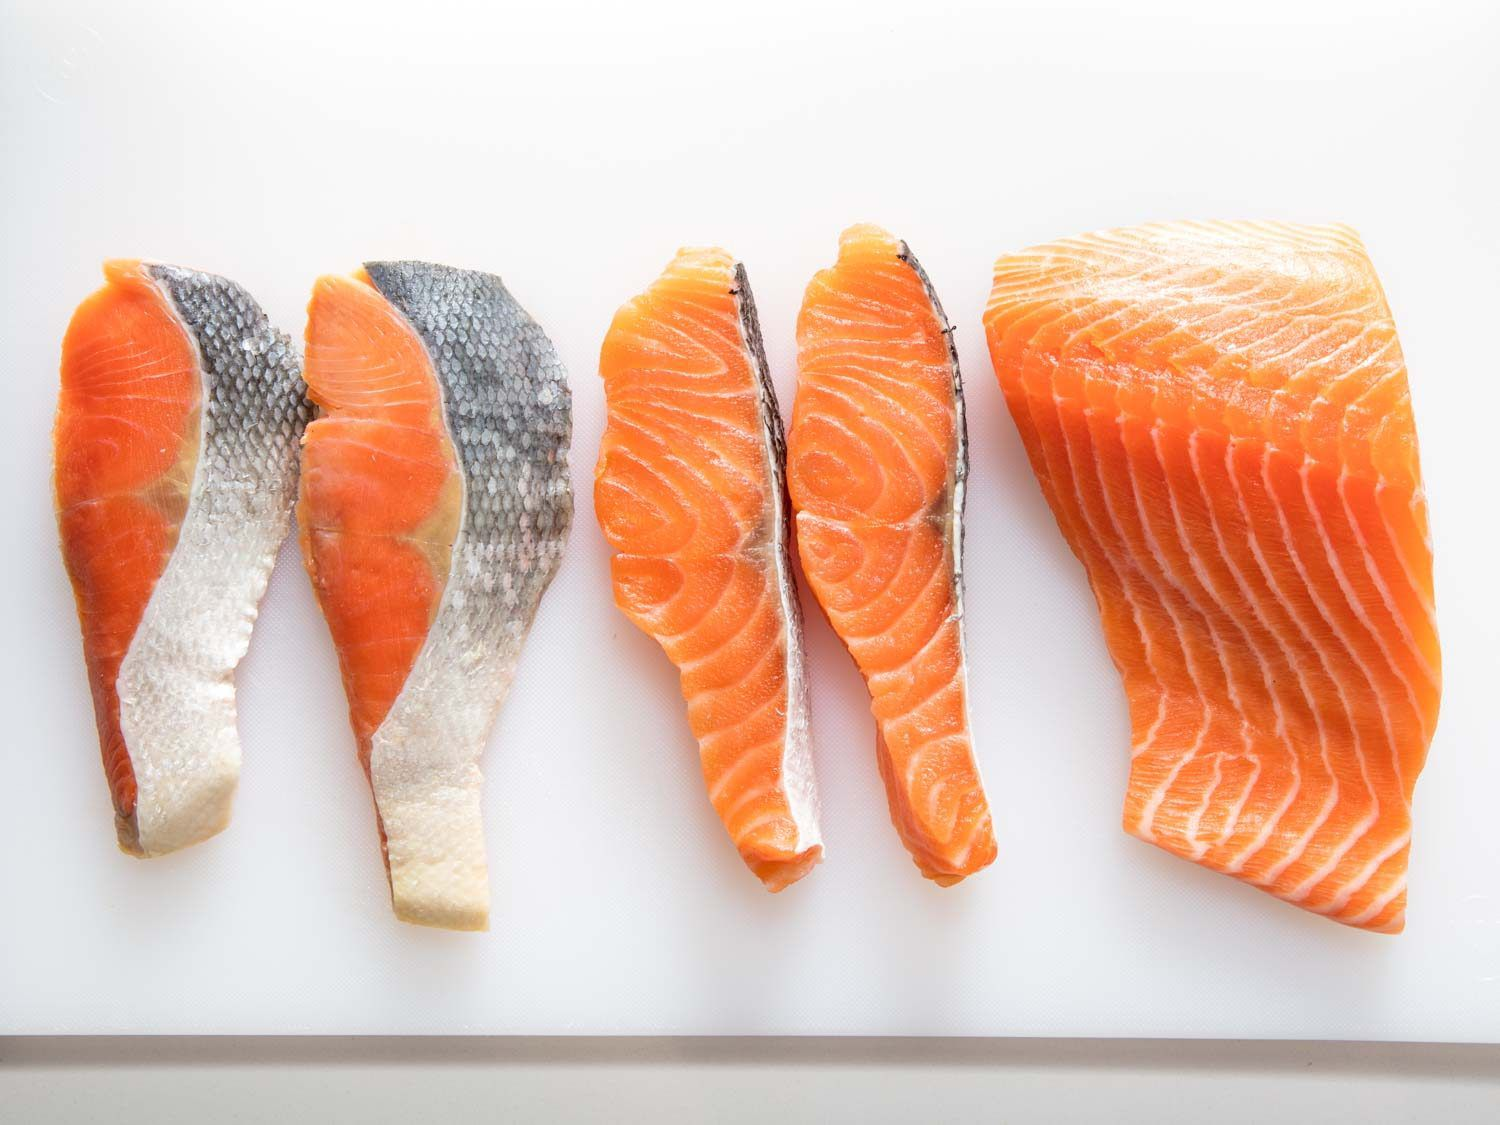 Store-bought salted salmon, home-cured salted salmon, fresh salmon